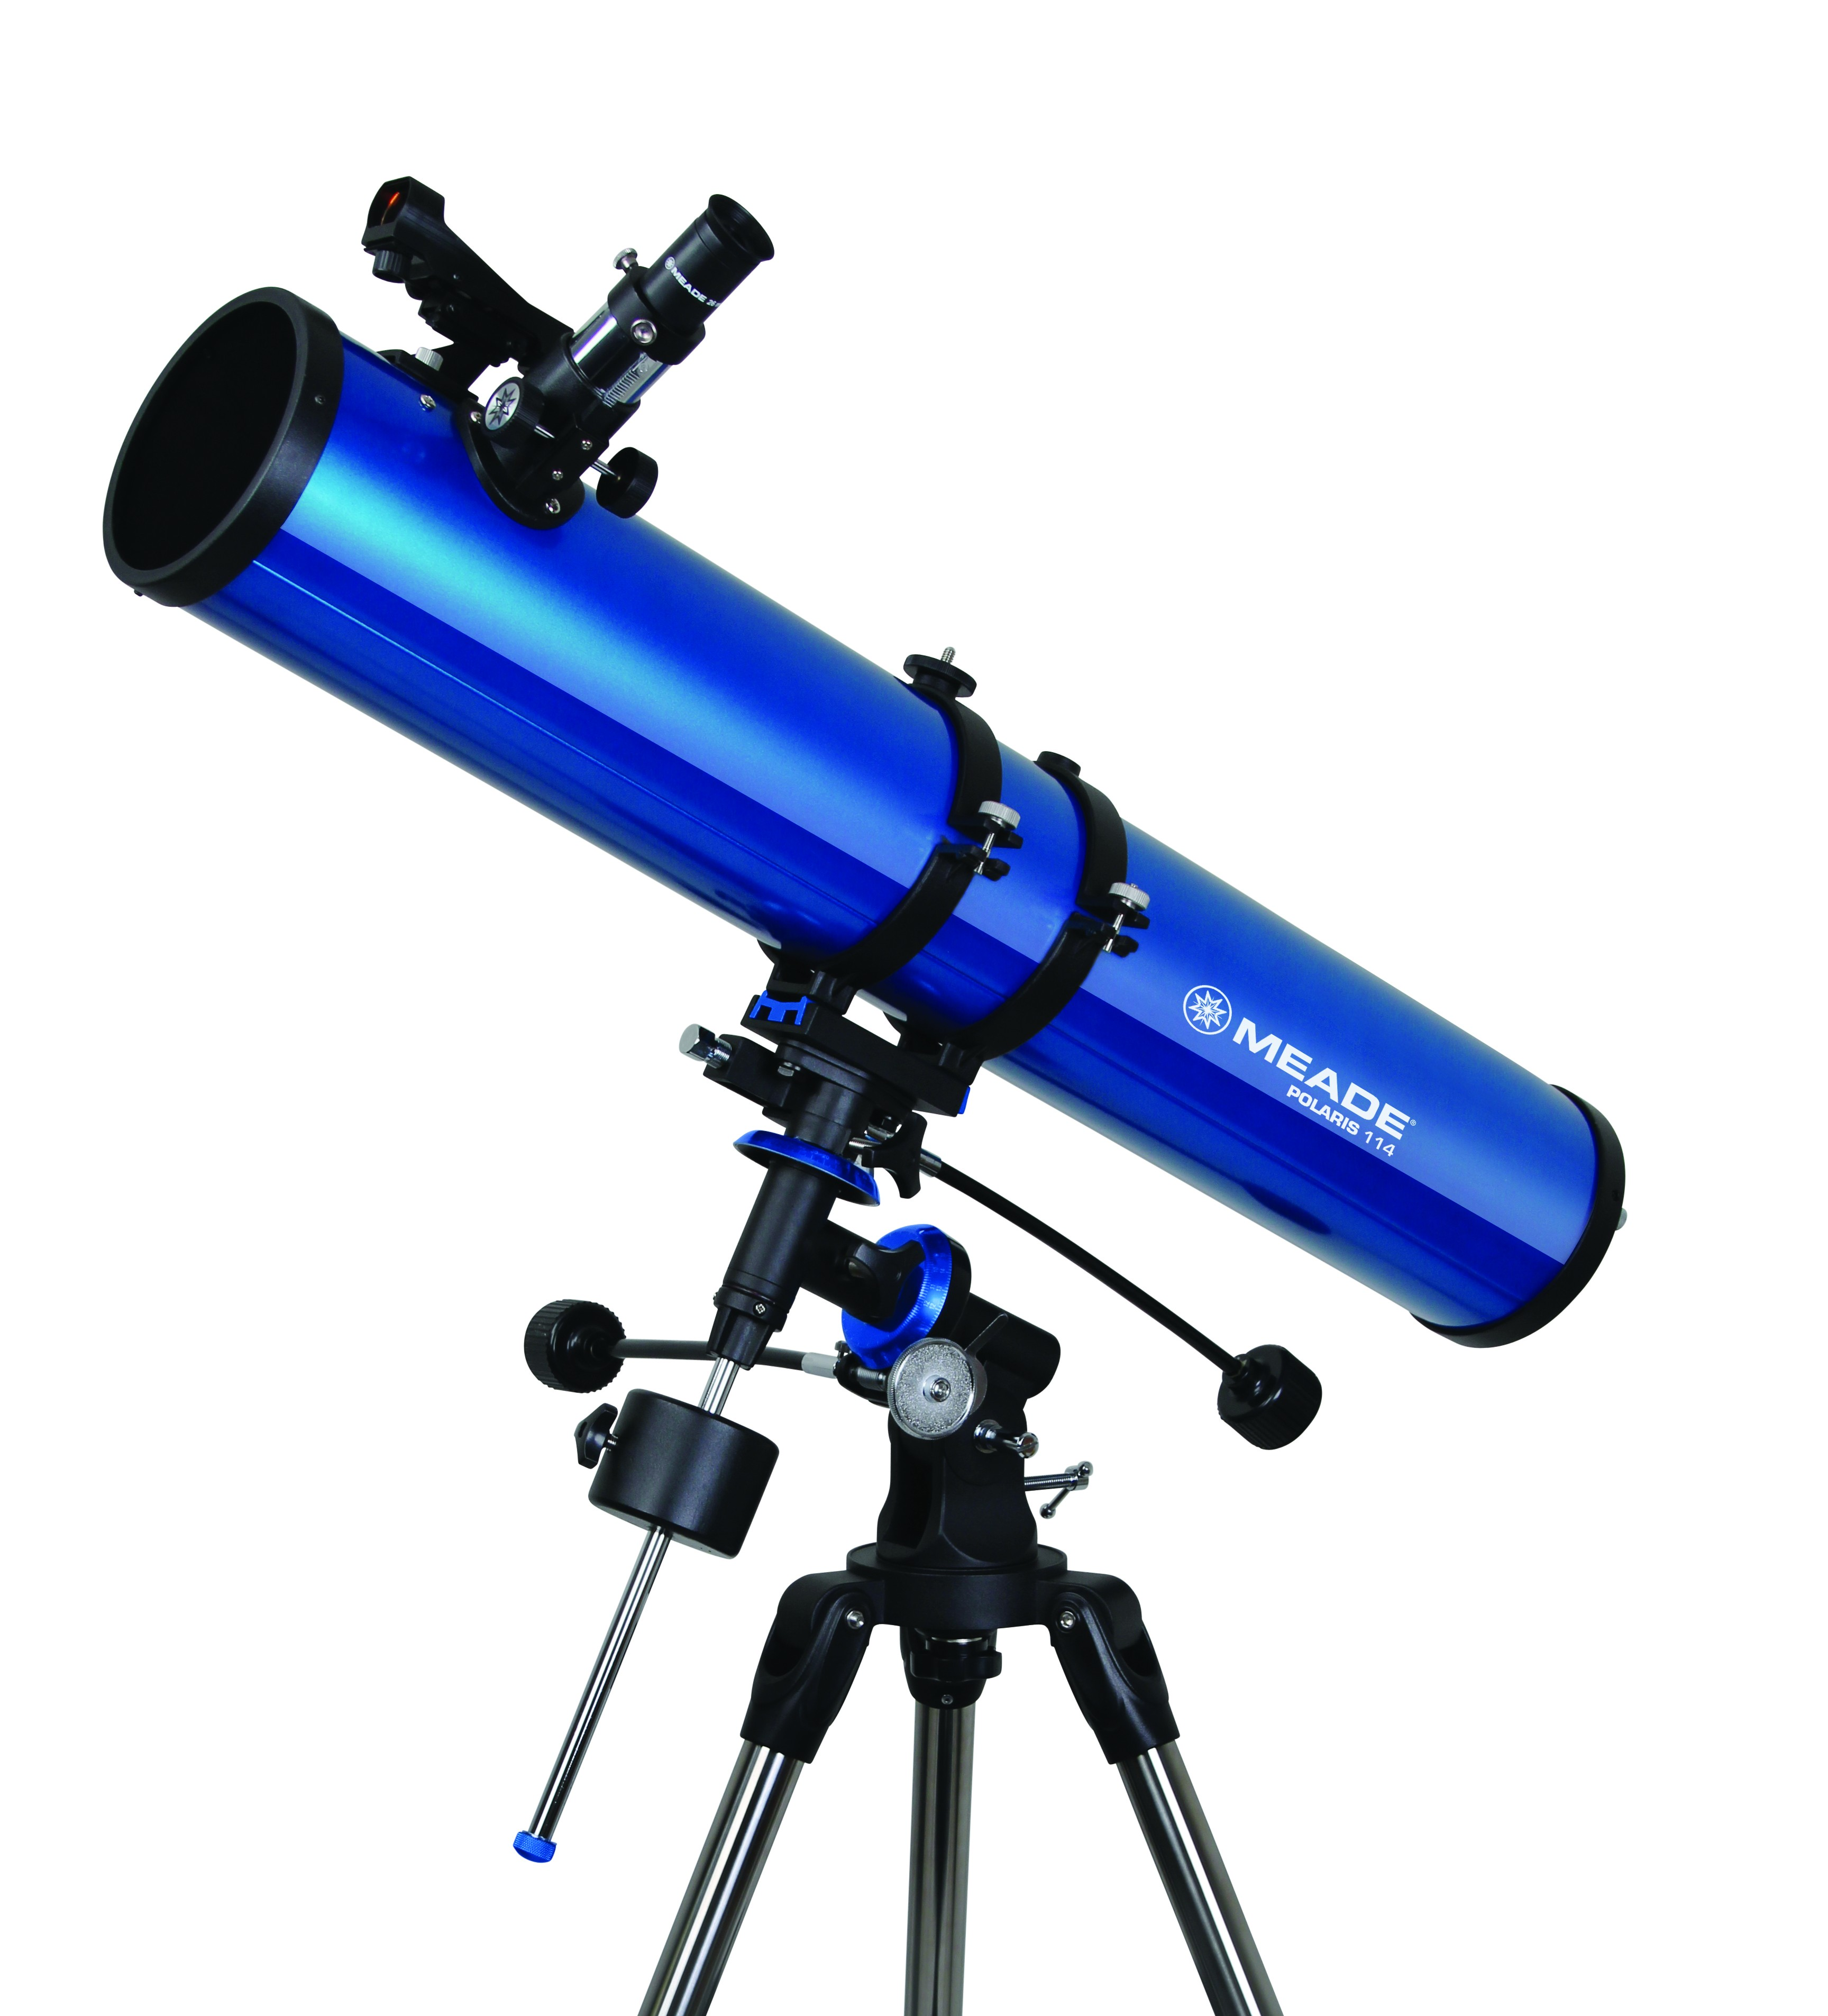 kinh_thien_van_phan_xa_meade_polaris_d114f1000-eq